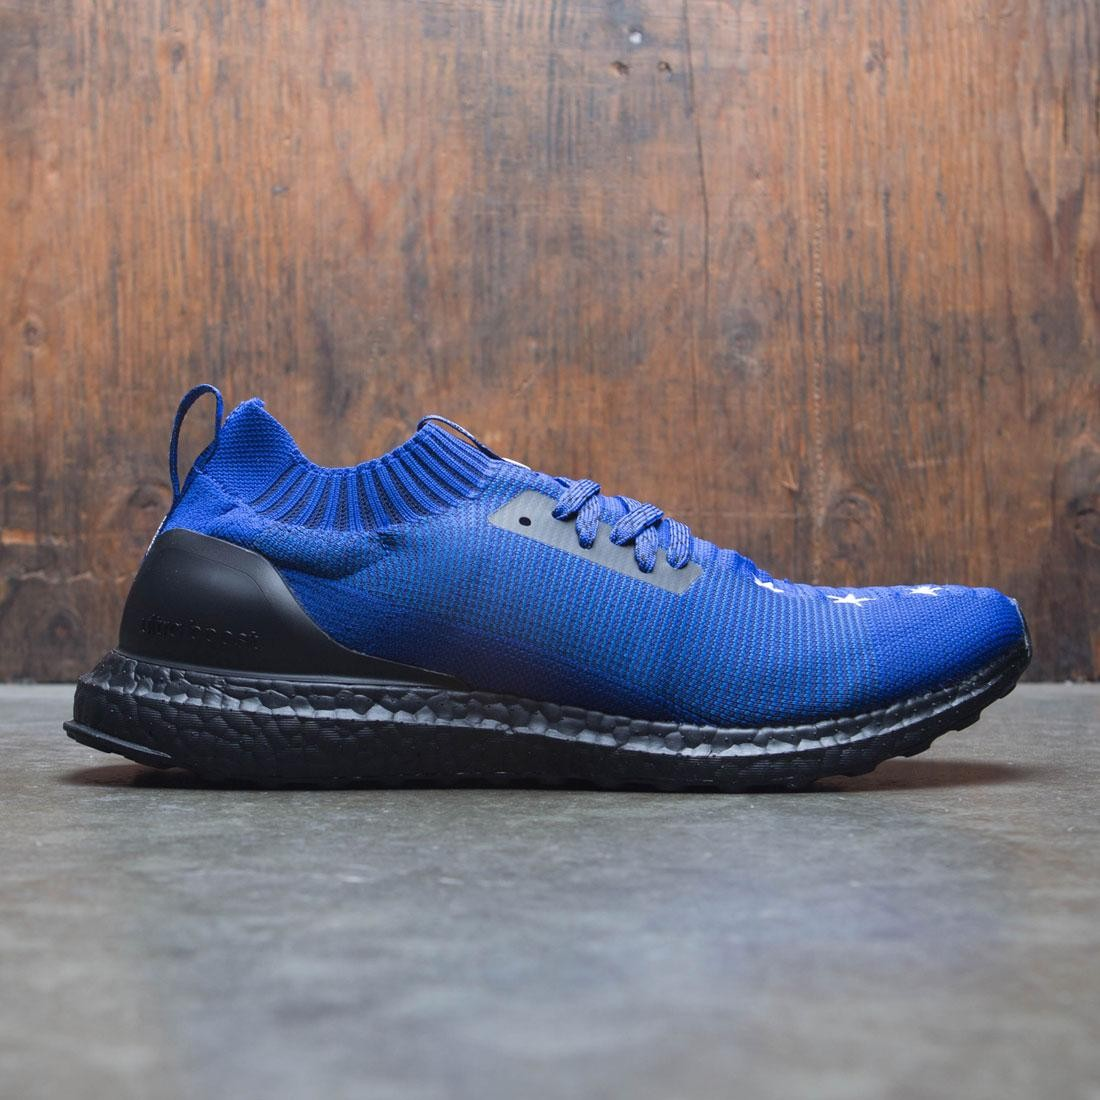 7beb7f314d8 Adidas Consortium x Etudes Men UltraBOOST blue bold blue collegiate royal dark  blue